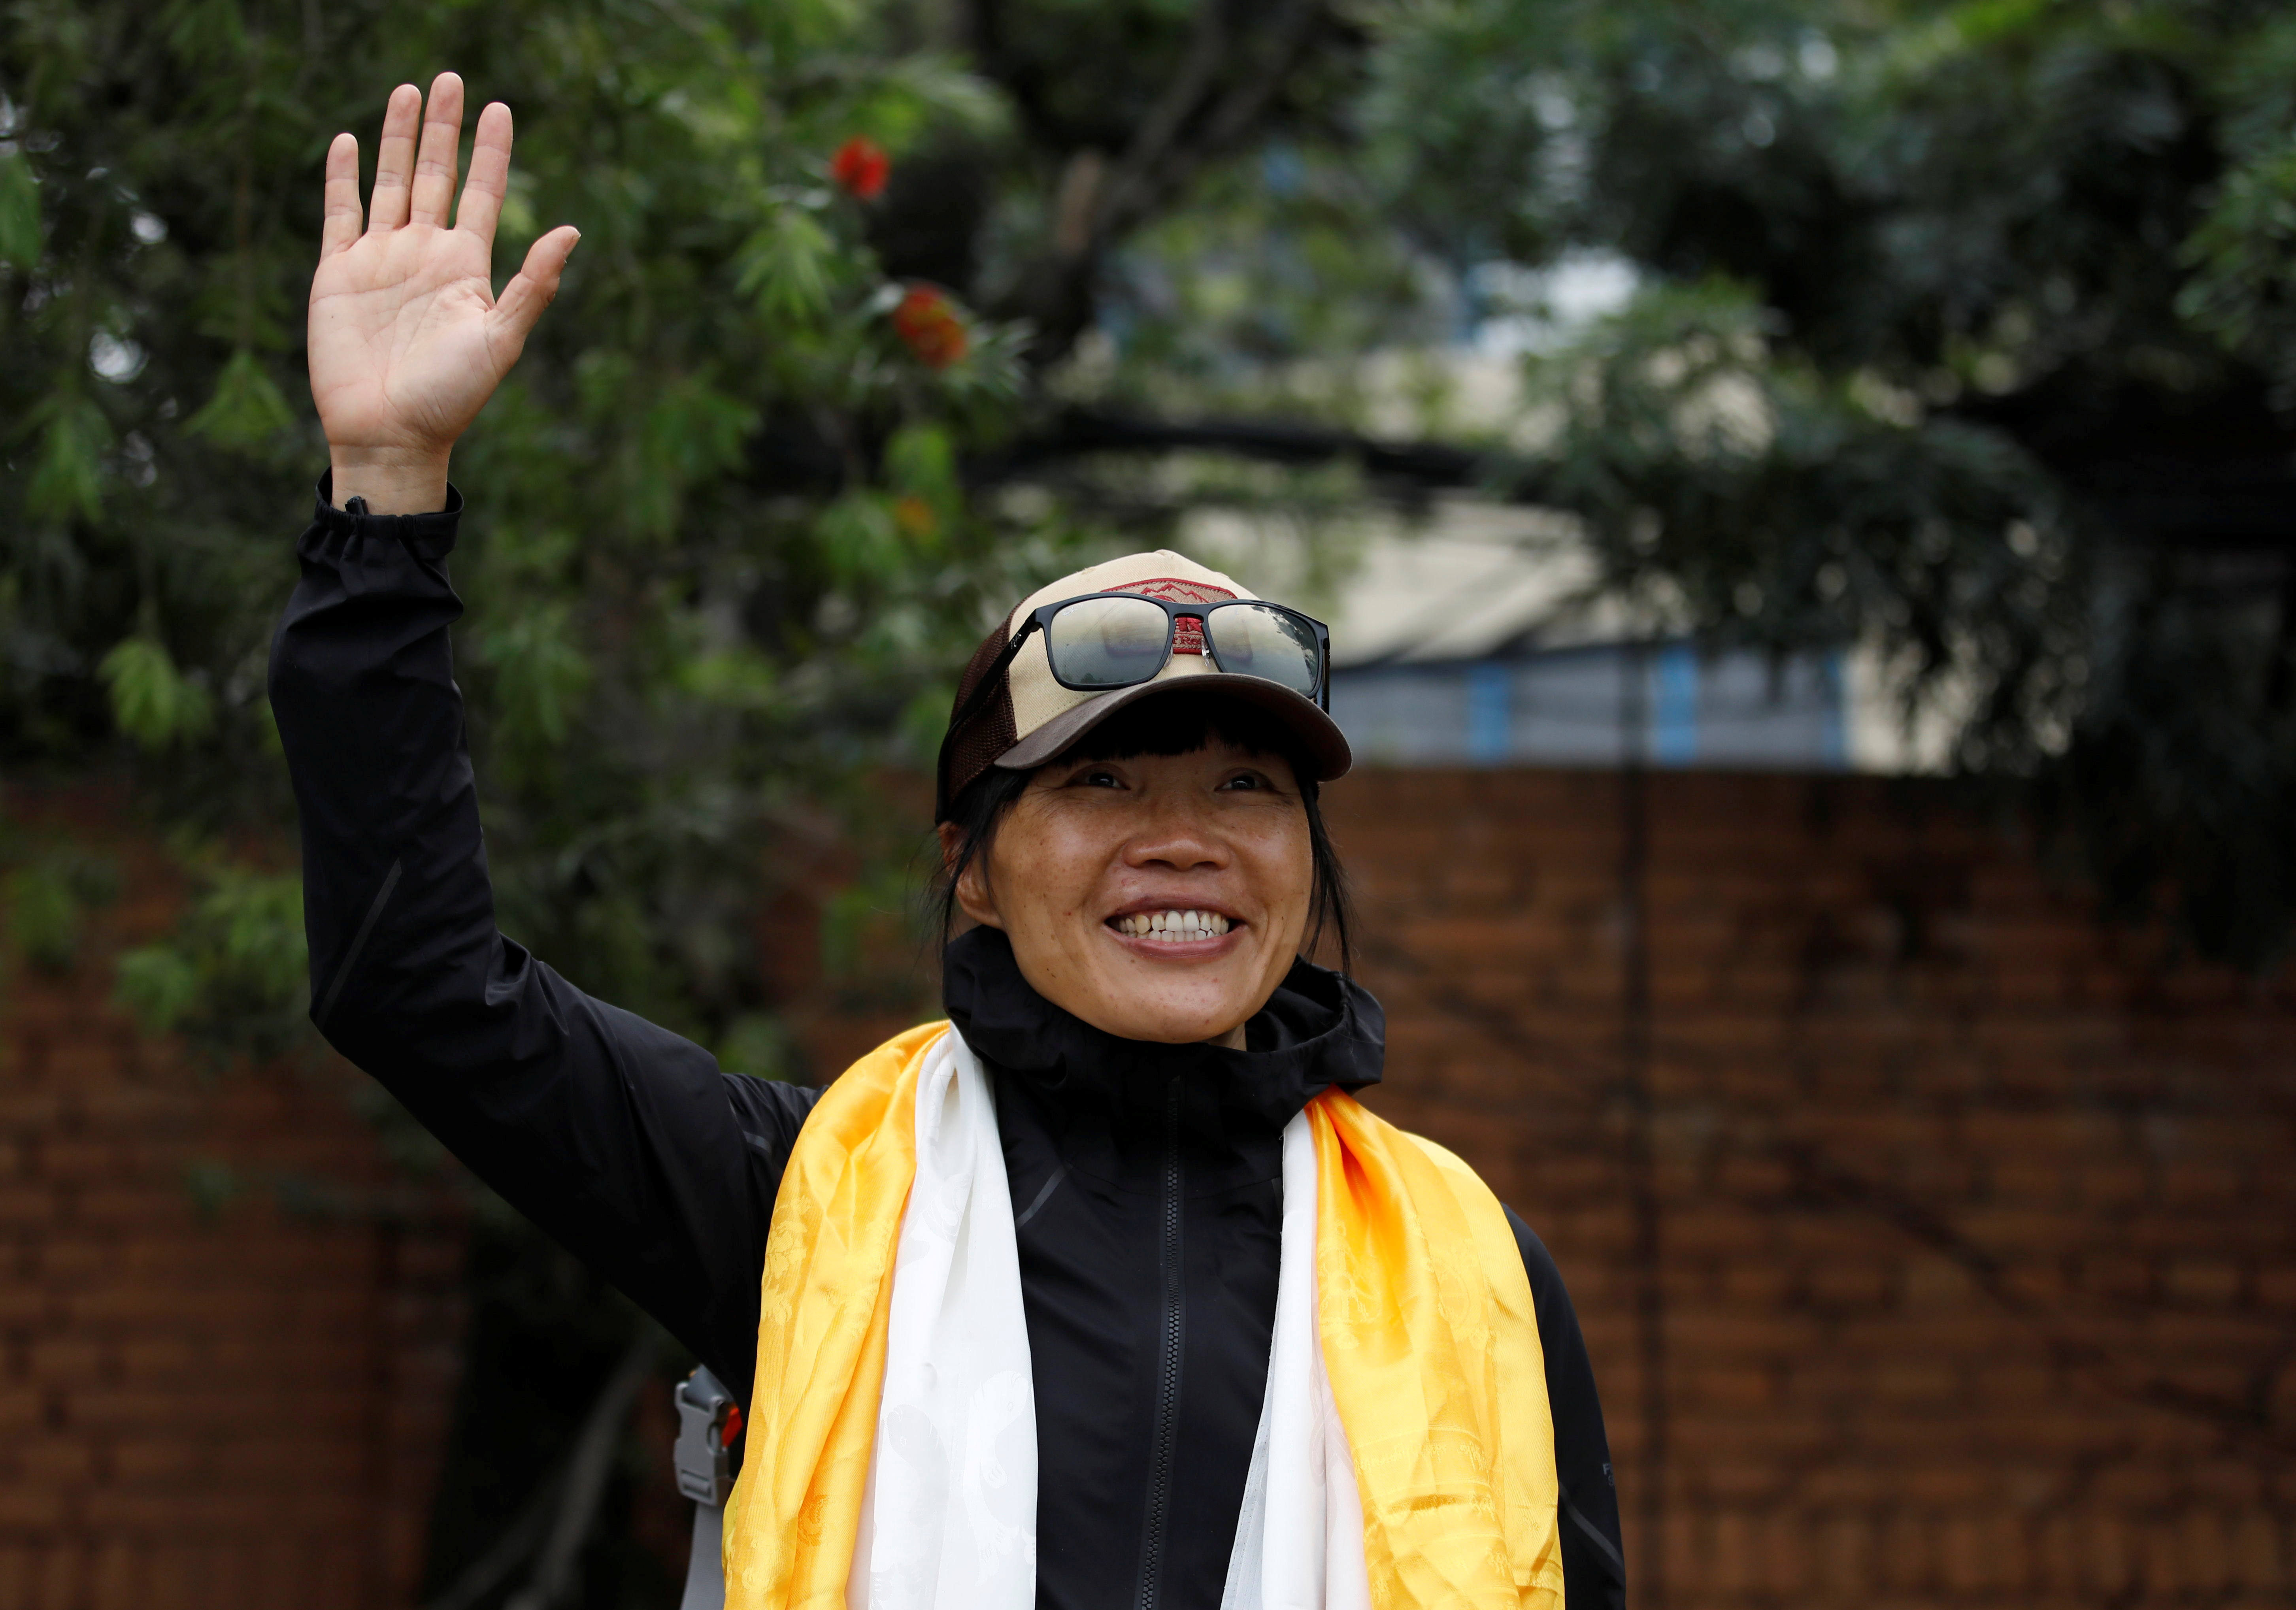 Hong Kong's Tsang Yin-Hung, 45, who scaled Mount Everest in less than 26 hours, the shortest time taken by any woman after starting from the base camp, waves for a picture upon her arrival after climbing Everest, in Kathmandu, Nepal May 30, 2021. REUTERS/Navesh Chitrakar